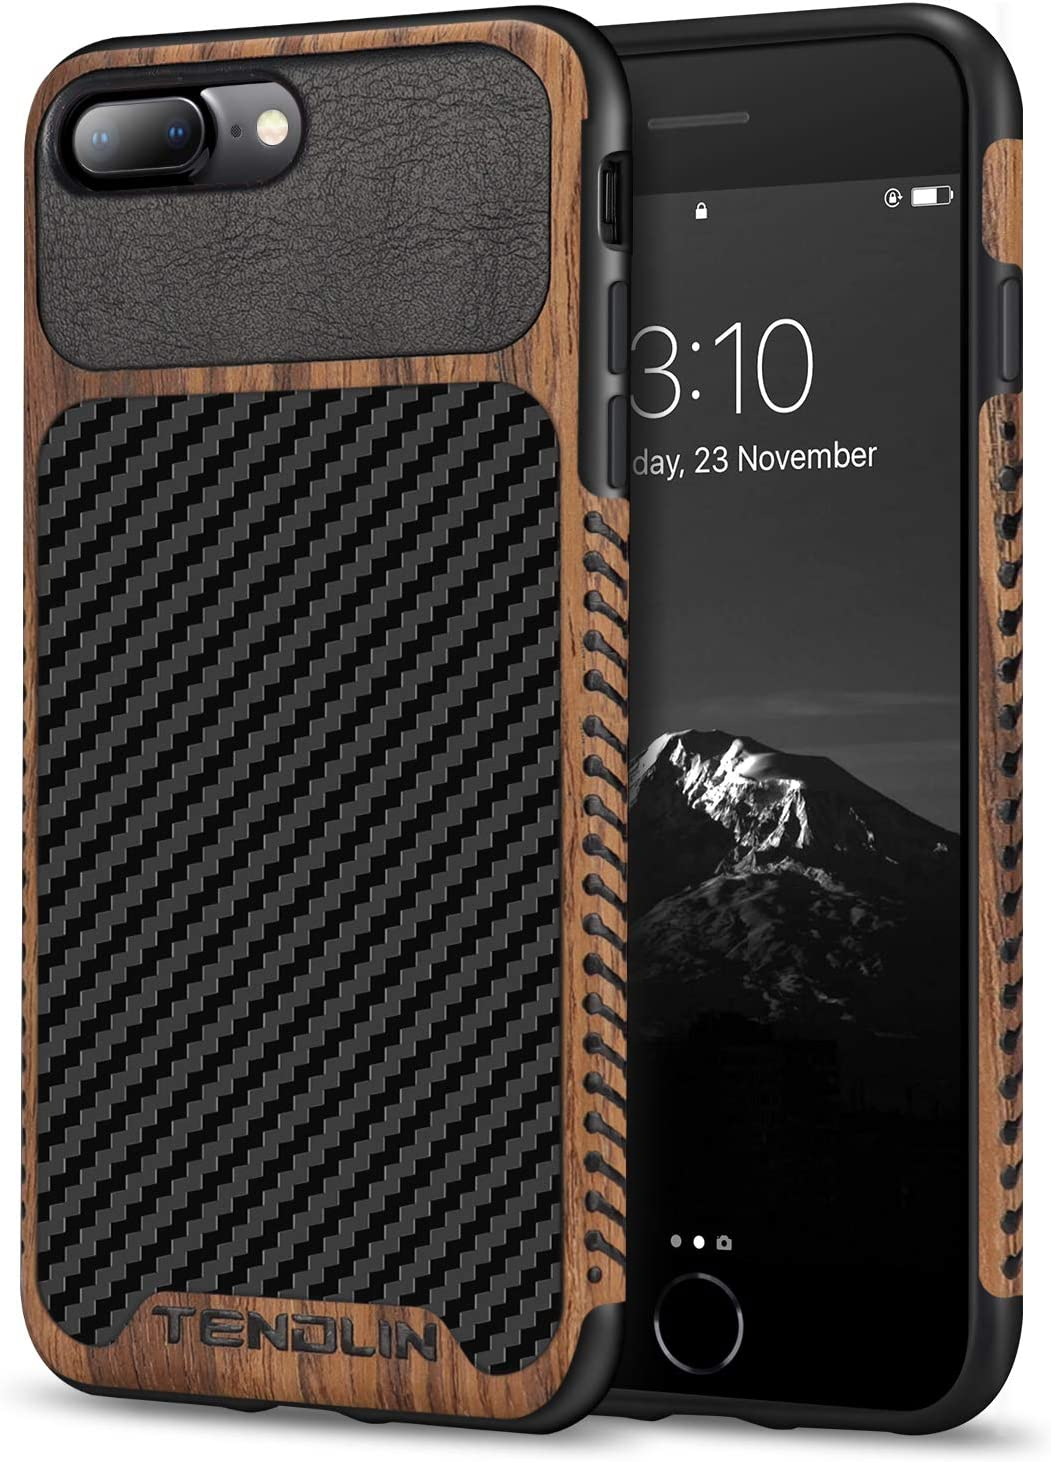 TENDLIN Compatible with iPhone 7 Plus Case/iPhone 8 Plus Case Wood Grain with Carbon Fiber Texture Design Leather Hybrid Slim Case Compatible with iPhone 7 Plus and iPhone 8 Plus (Carbon & Leather)